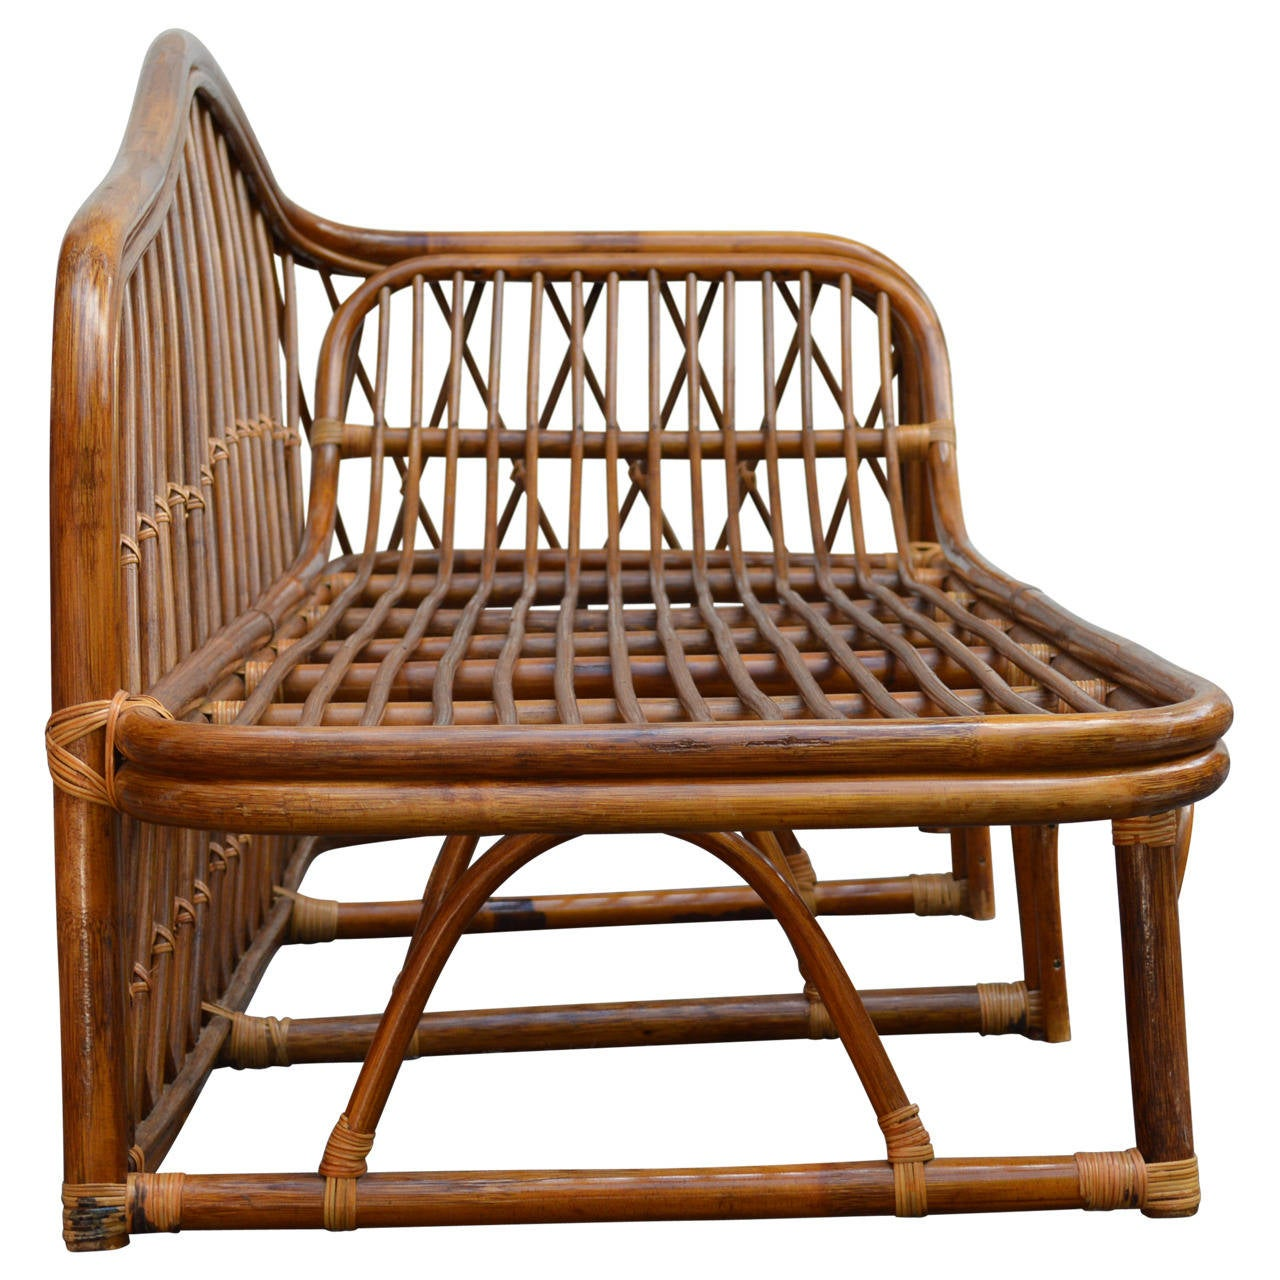 Vintage rattan chaise lounge at 1stdibs for Antique wicker chaise